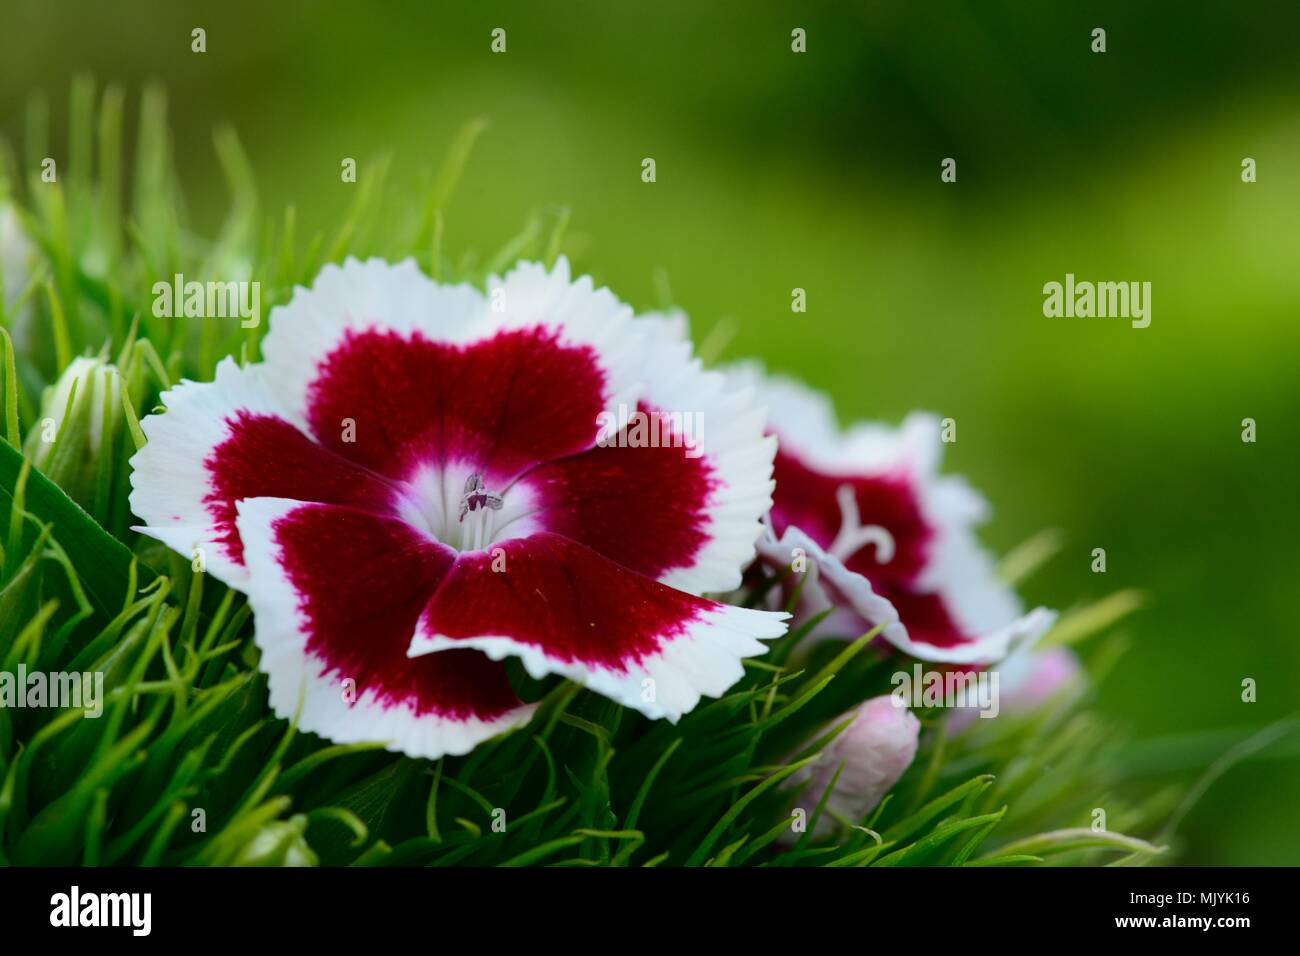 Close up of red and white carnations in bloom (Dianthus barbatus) - Stock Image